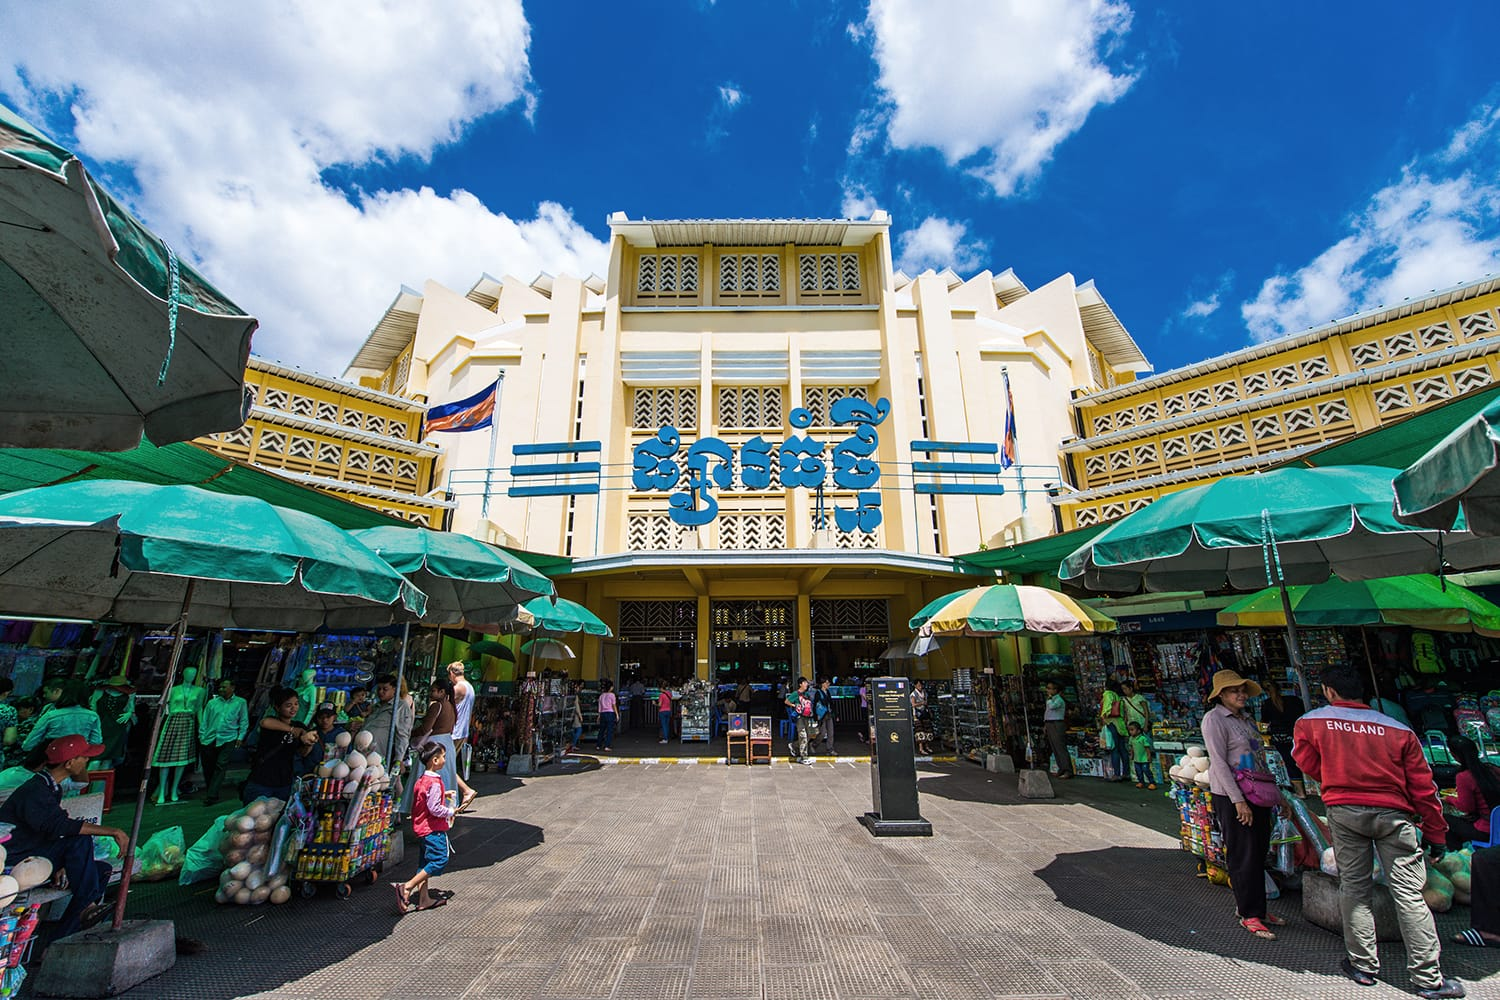 The exterior of Central Market (Phsar Thmei) in Phnom Penh, Cambodia